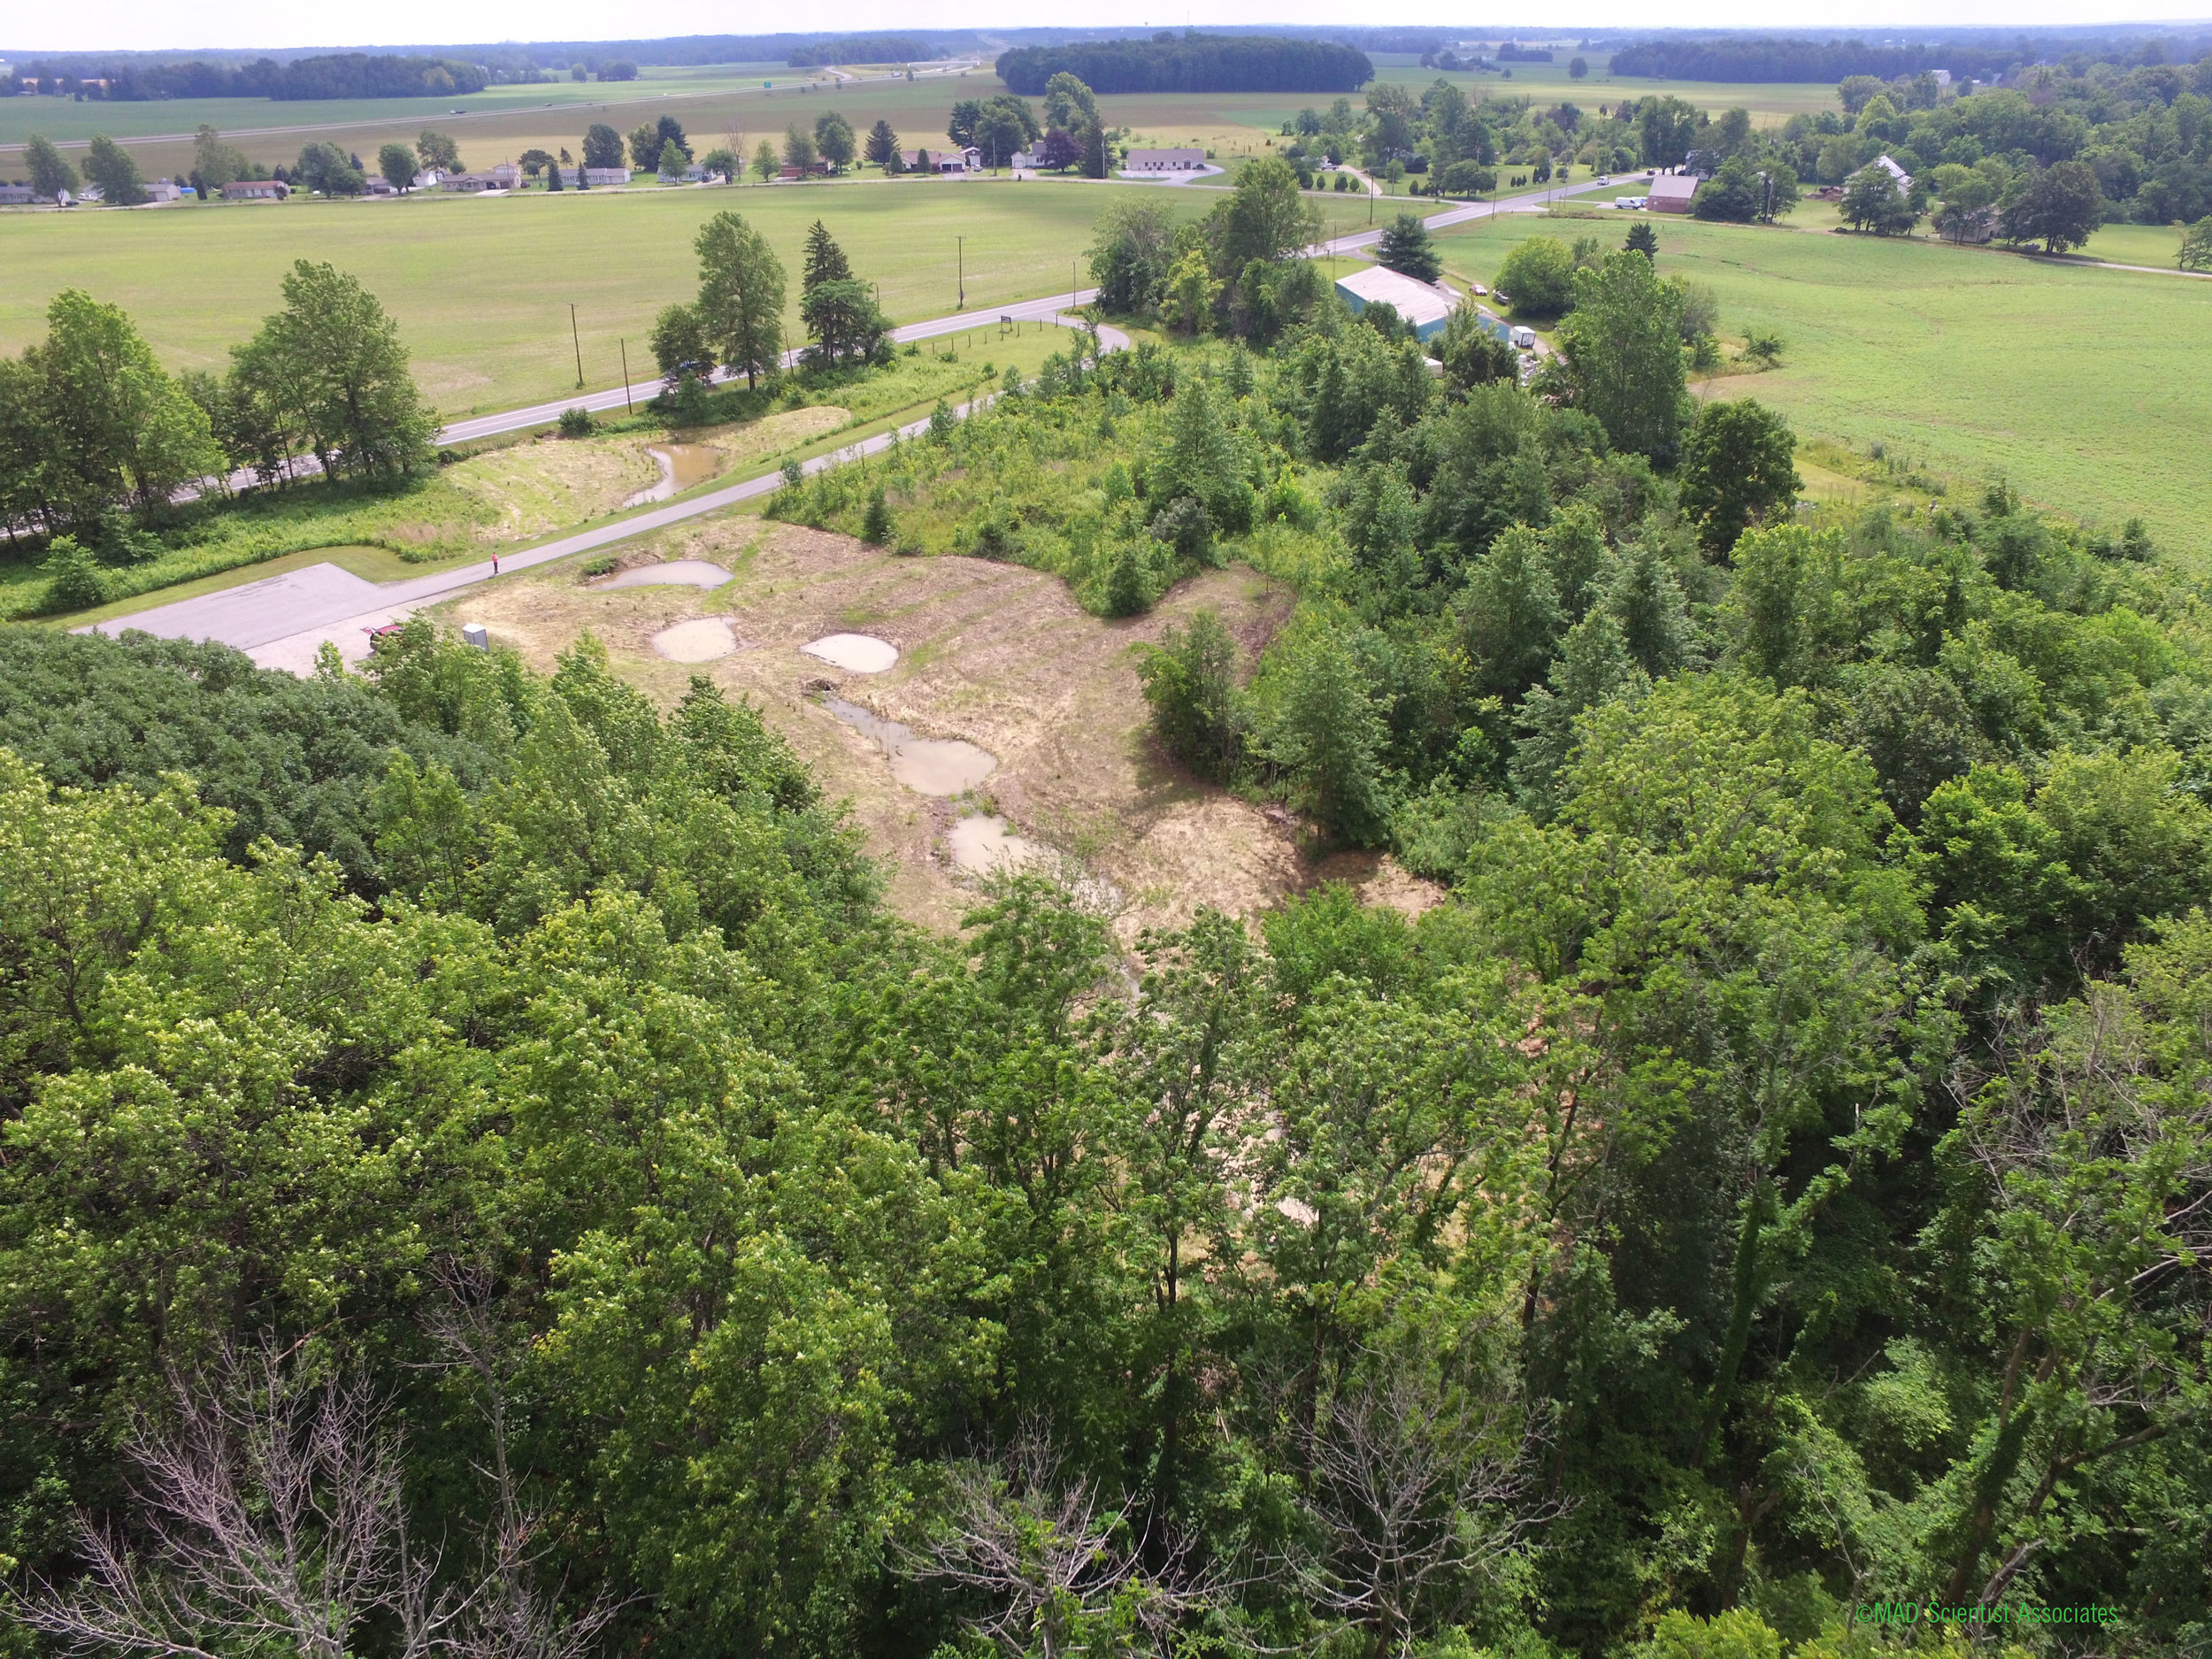 AERIAL DRONE SHOT TAKEN BY AARON AT HECKERT NATURE PRESERVE - CRAWFORD COUNTY PARK DISTRICT